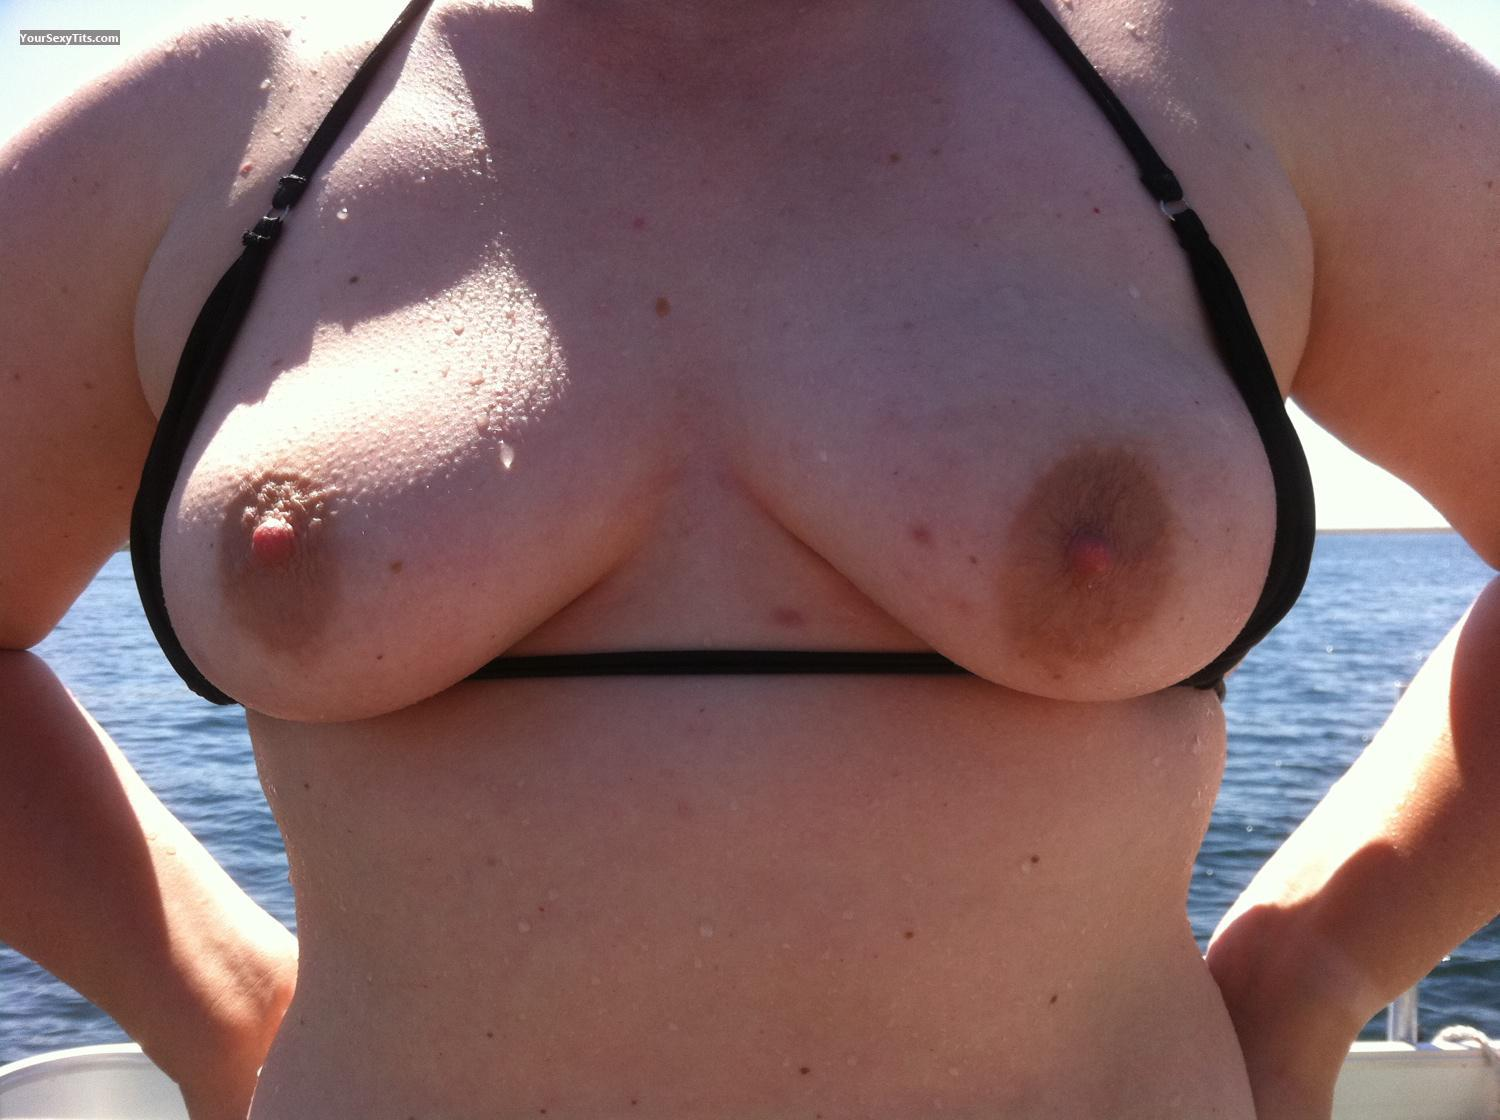 Tit Flash: Small Tits By IPhone - 14766 from United States